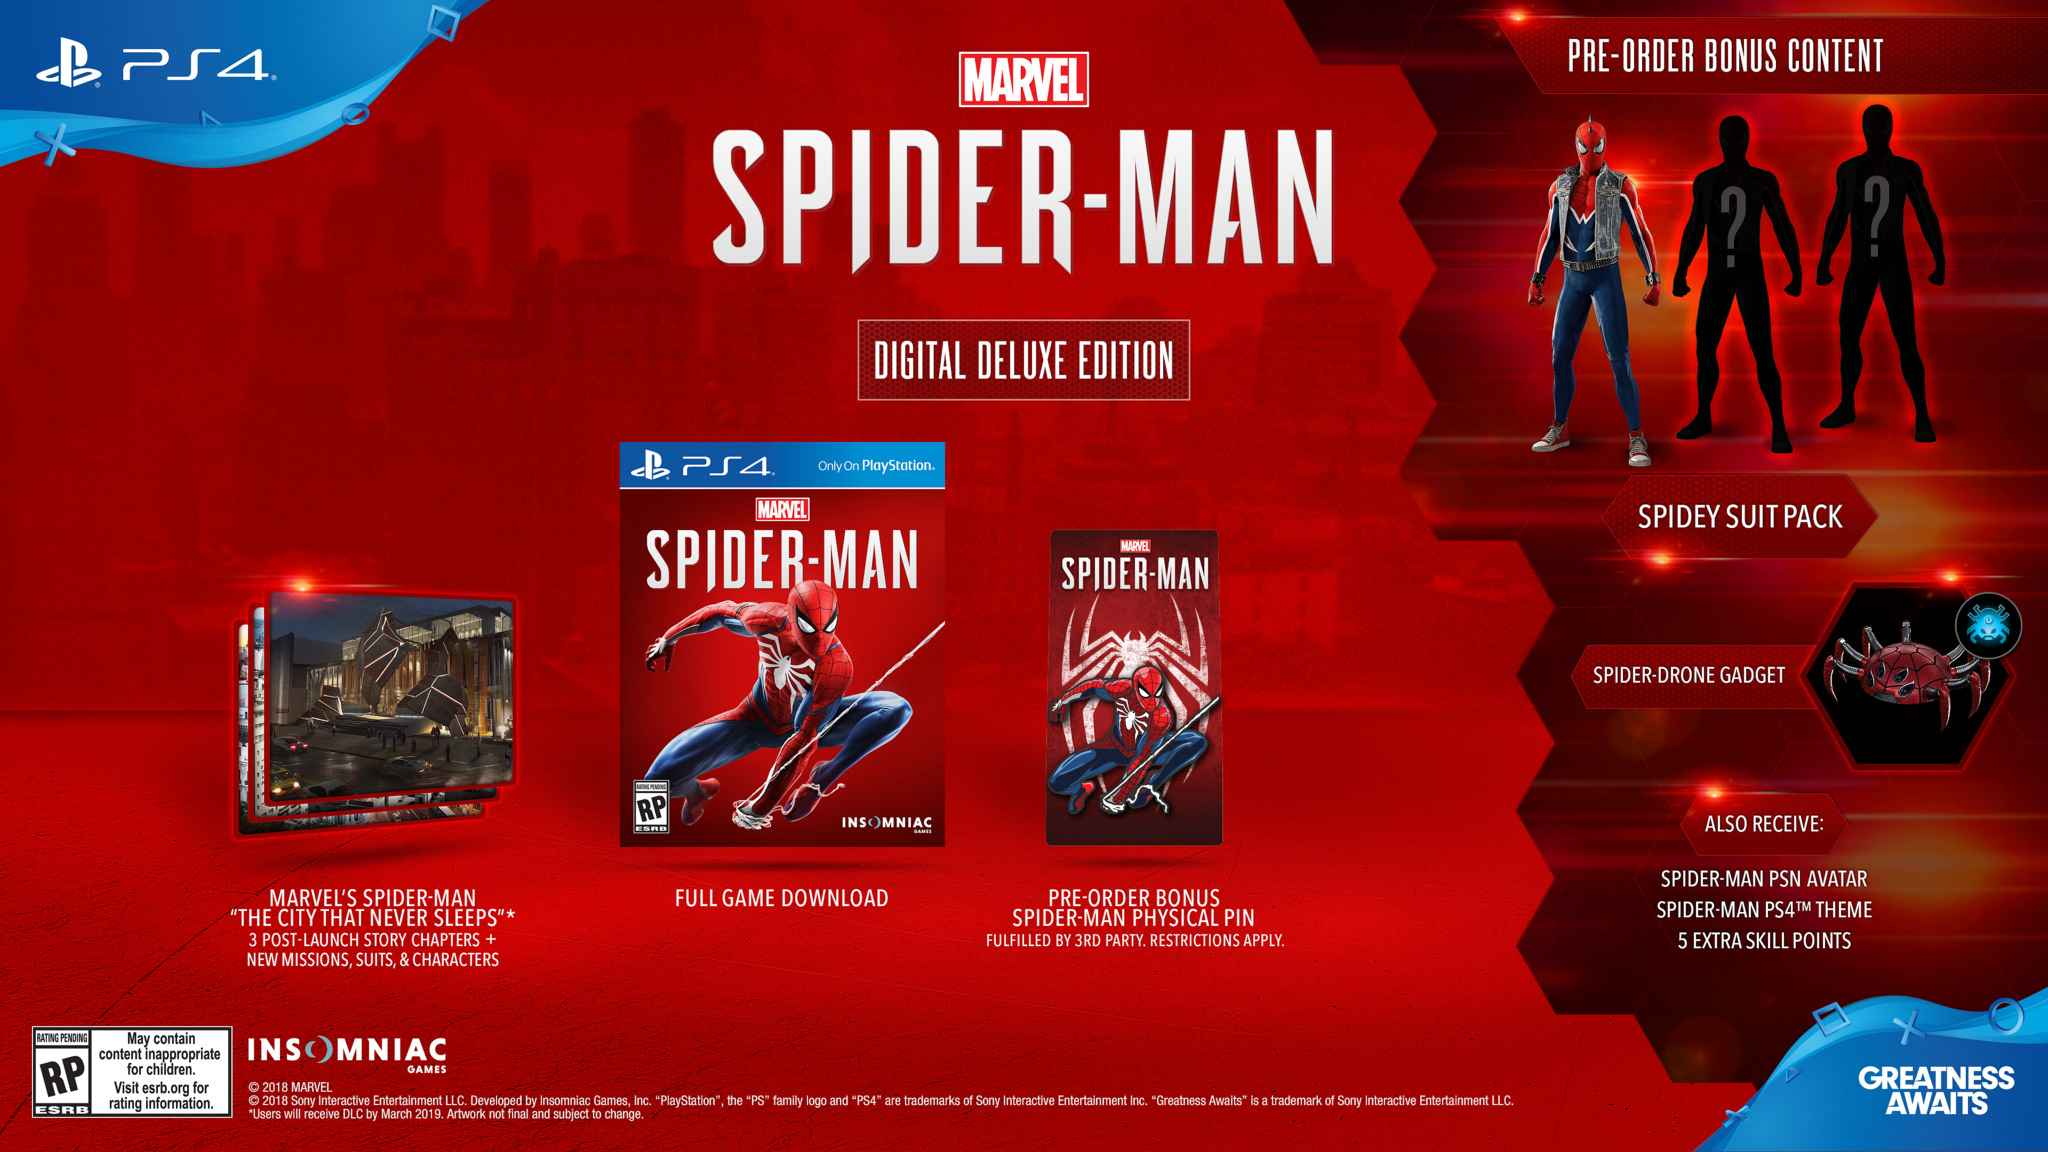 spider-man digital deluxe edition